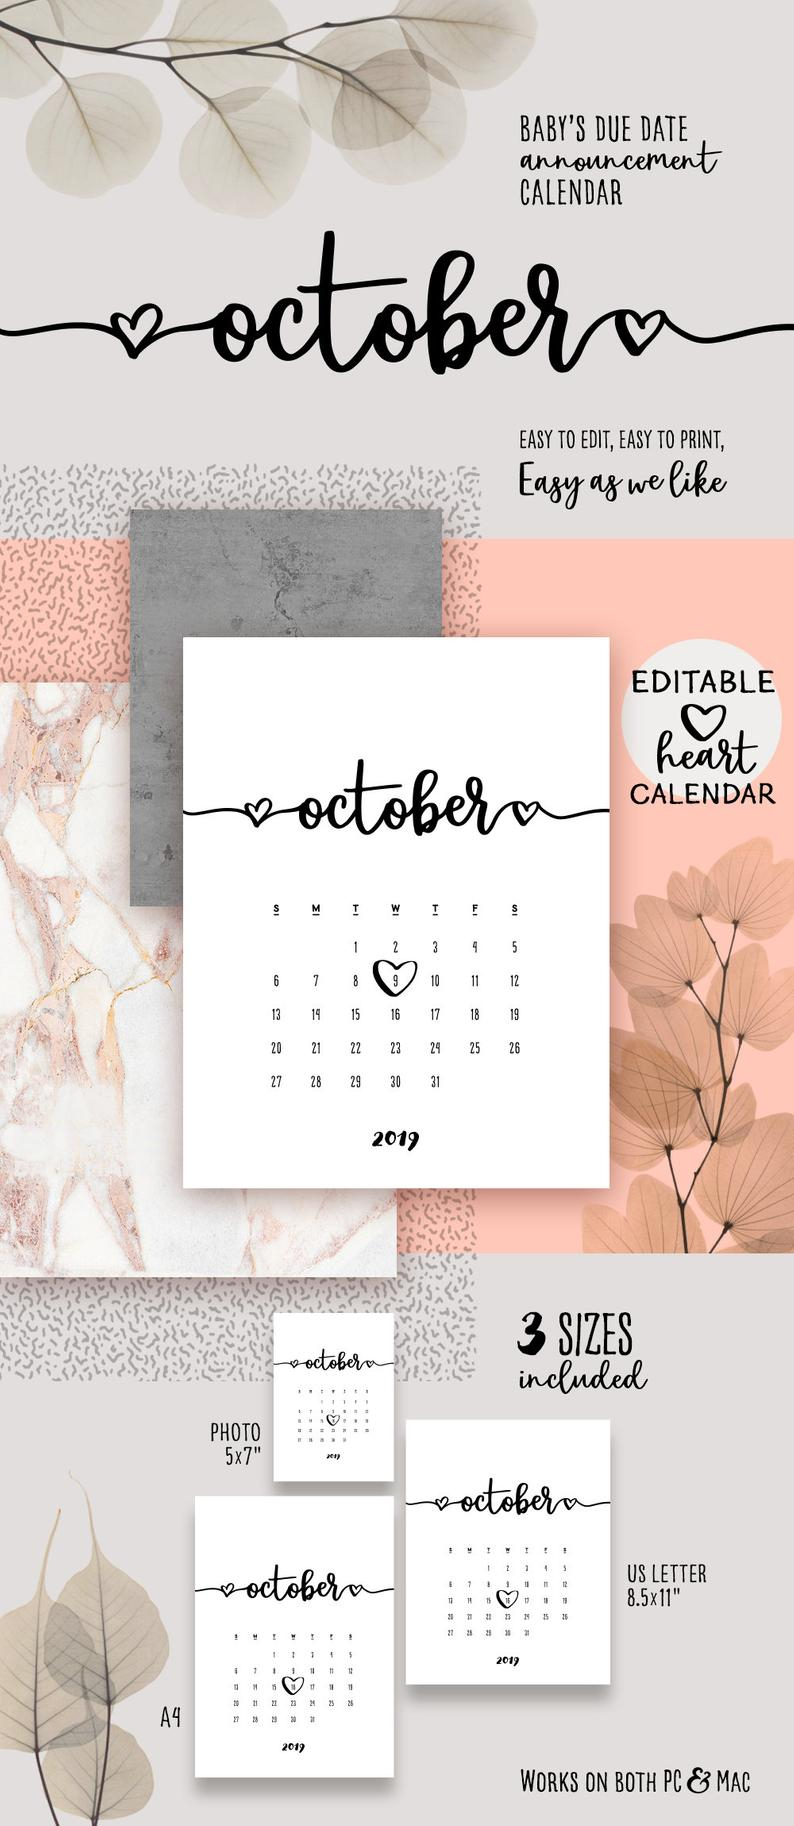 October 2019 Printable Pregnancy Calendar Template Lovely Baby Due Date  Announcement Pregnancy Calendar Pdf Baby Announce Editable Calendar intended for Printable Pregnancy Calendar